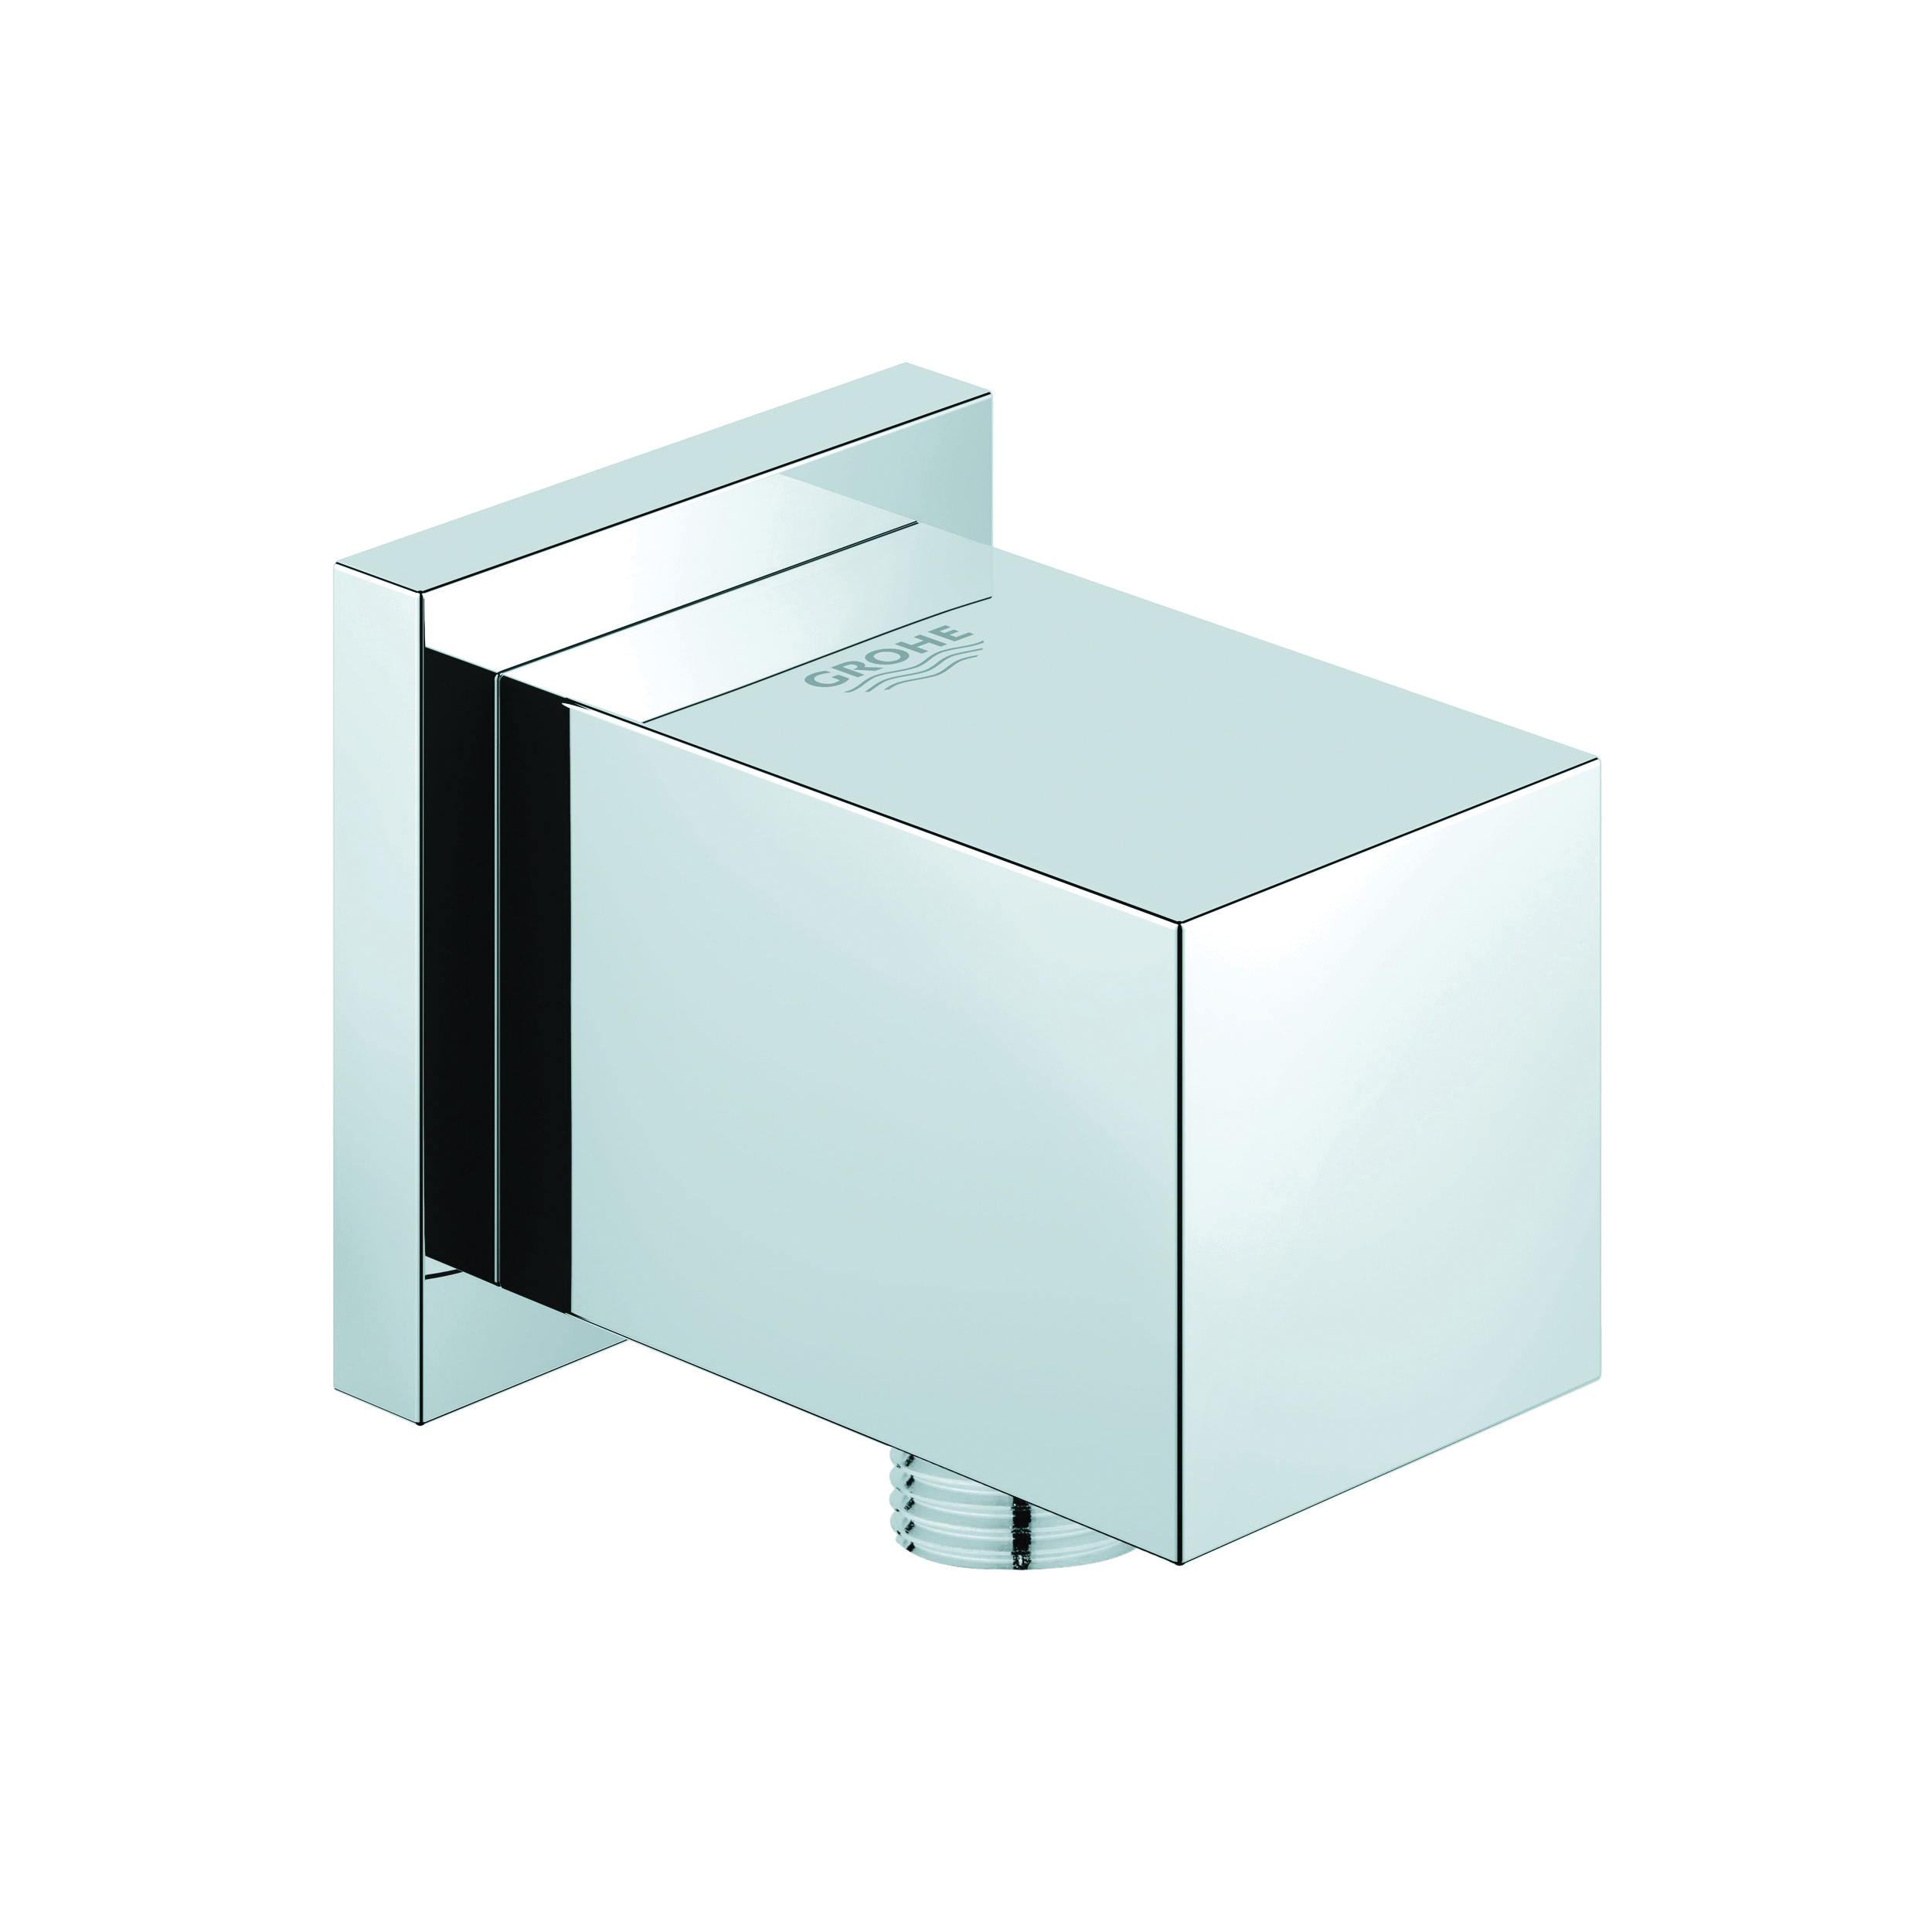 GROHE 27708000 Allure Brilliant Shower Outlet Elbow, 1/2 in, MNPT, Brass, Import